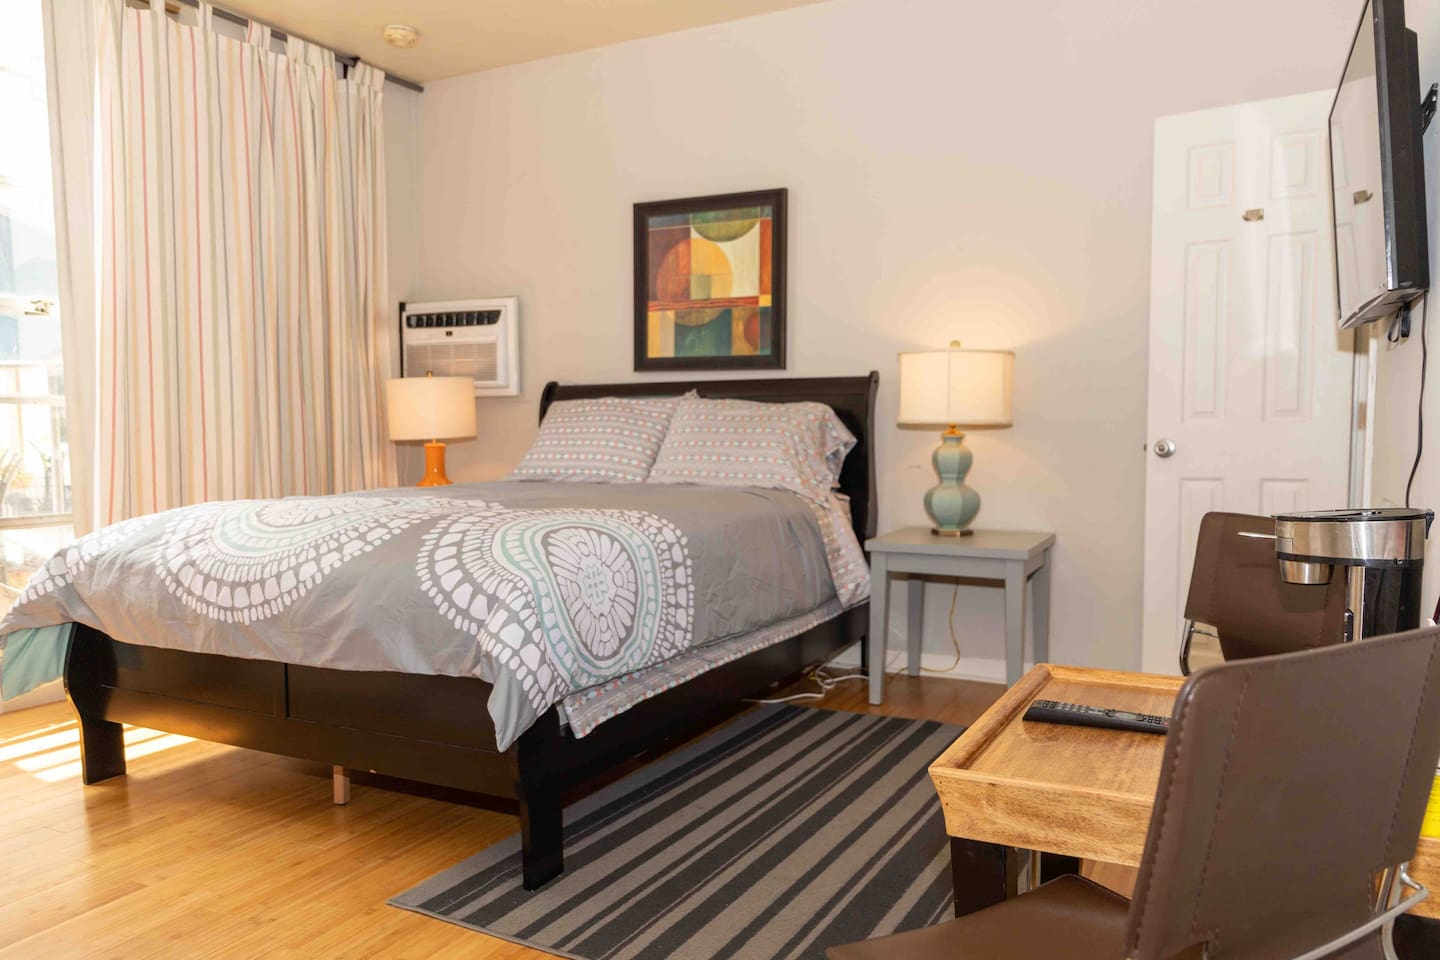 Sun filled studio right off the street of Short North. Walk to Convention Center in 5 minutes, restaurants in 1 minute. And steps from Goodale Park.